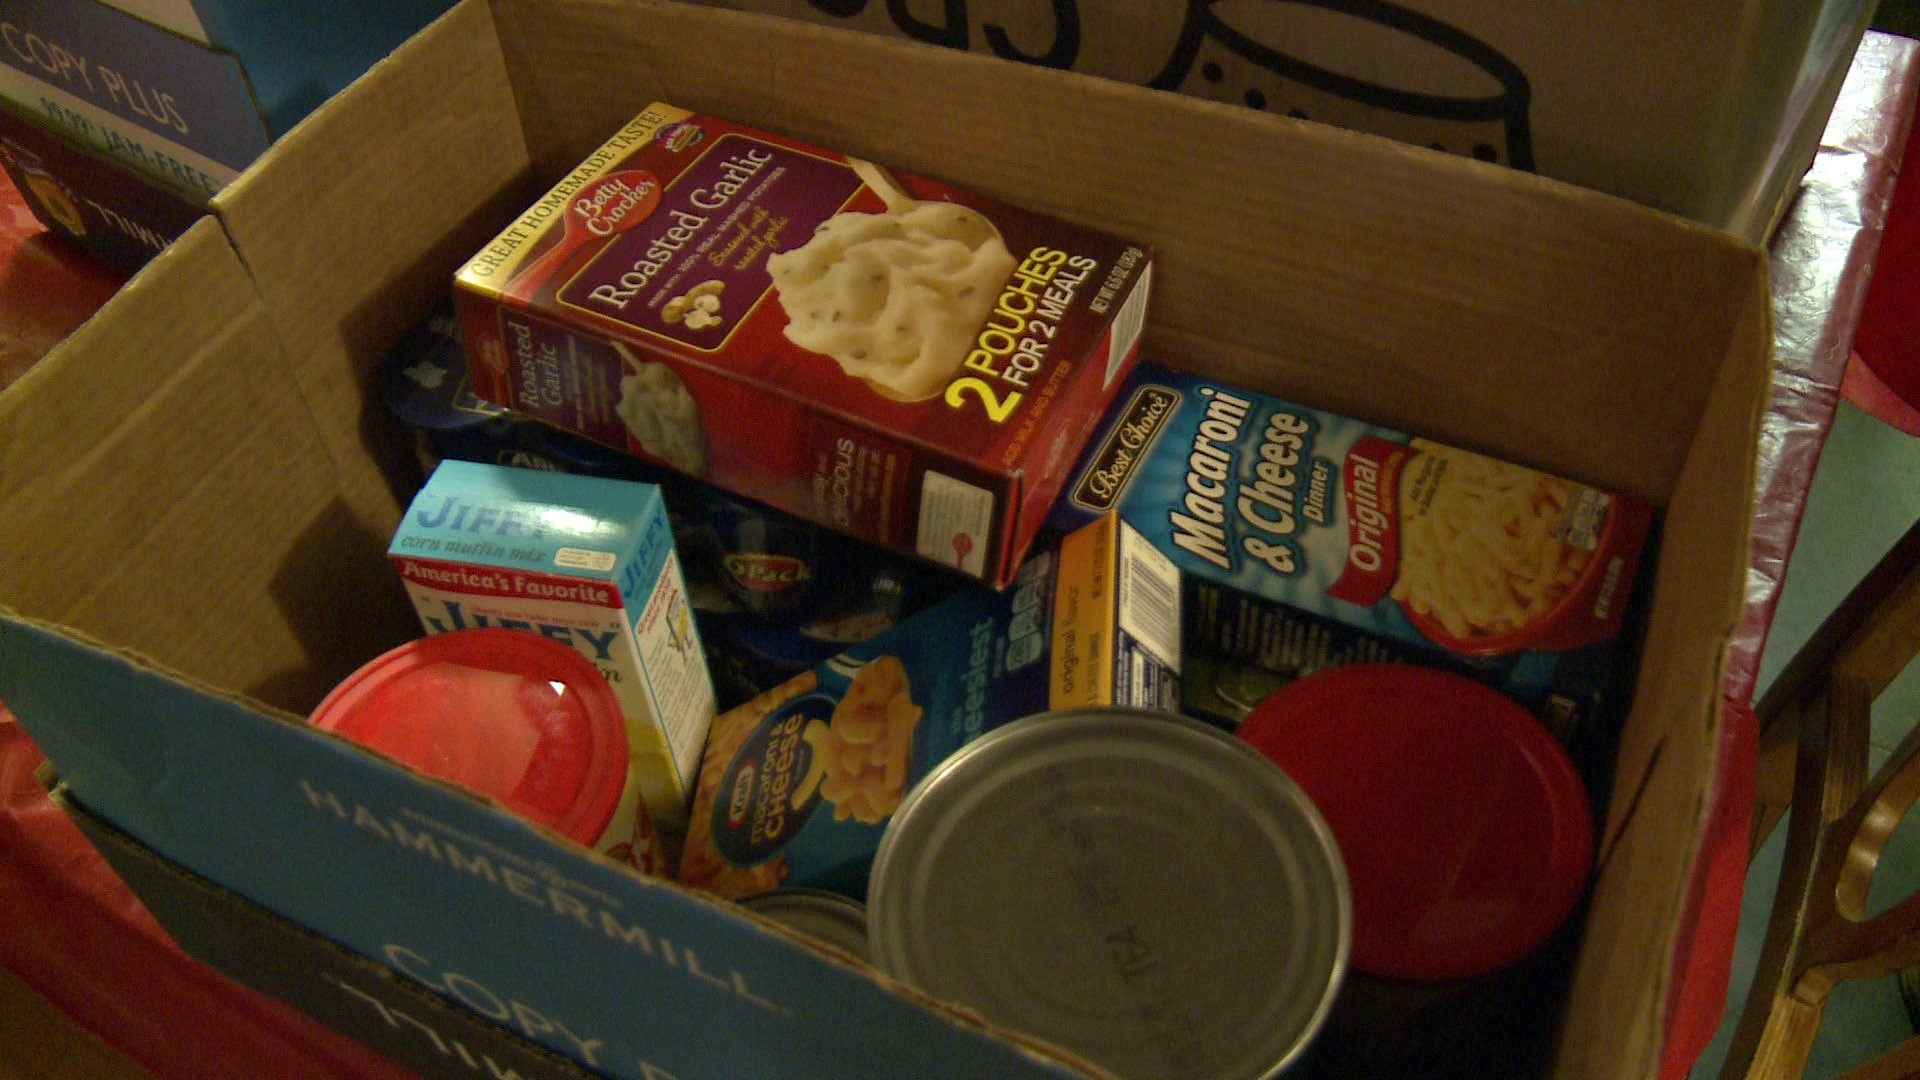 VETERANS FOOD DONATION